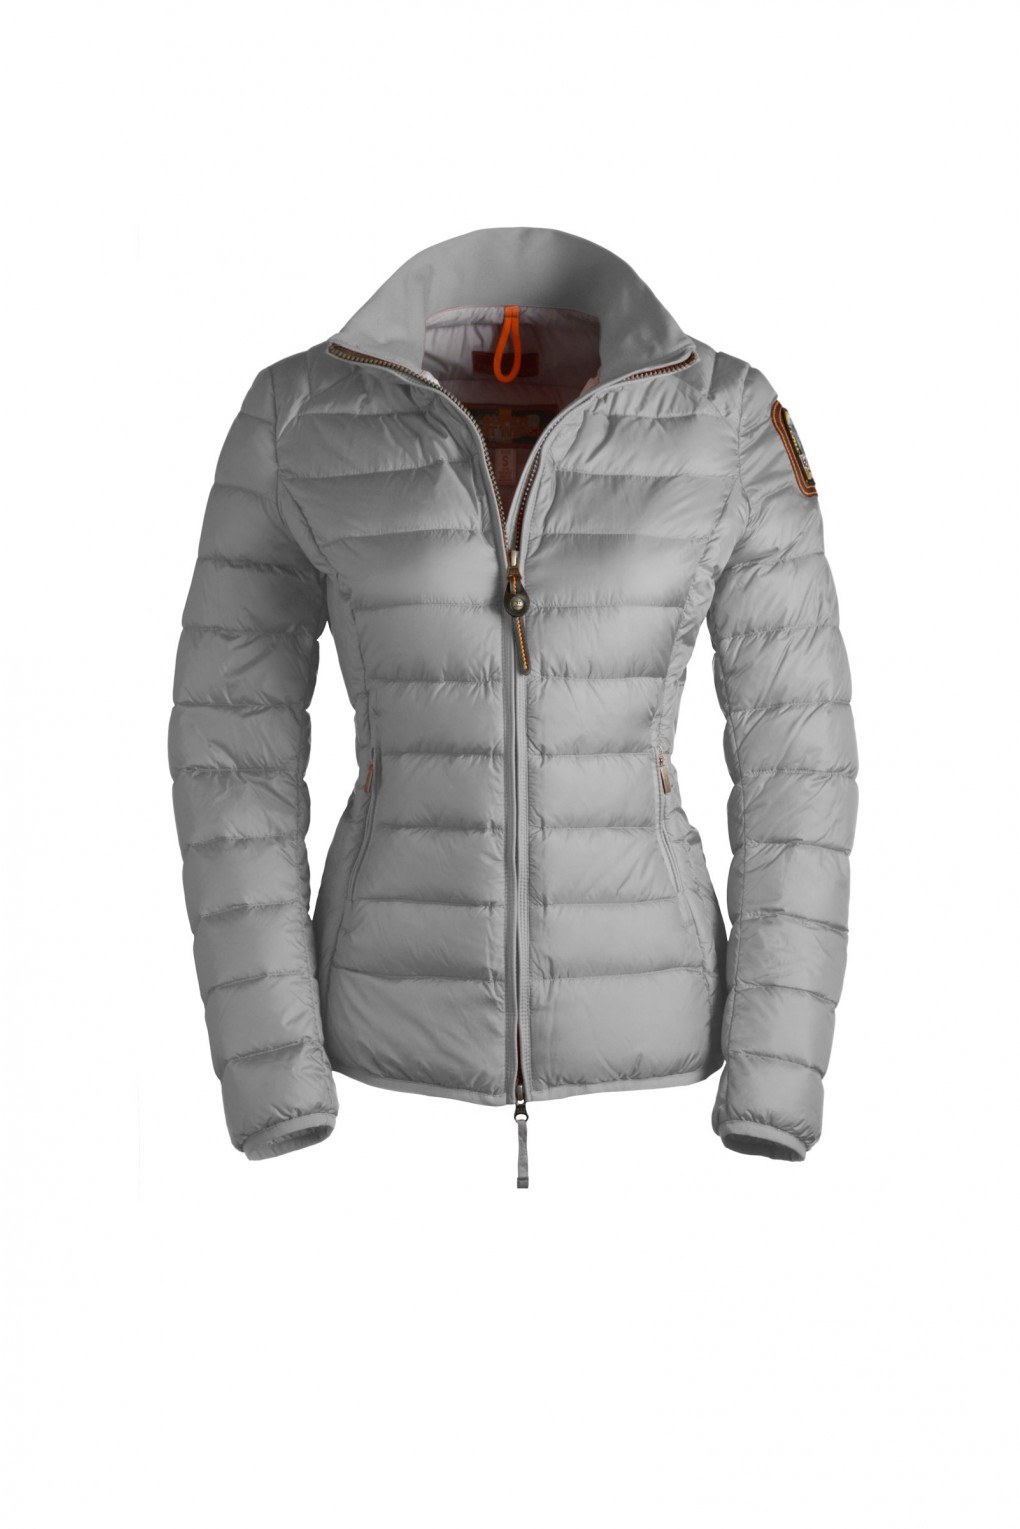 parajumpers GEENA 6 woman outerwear Grey